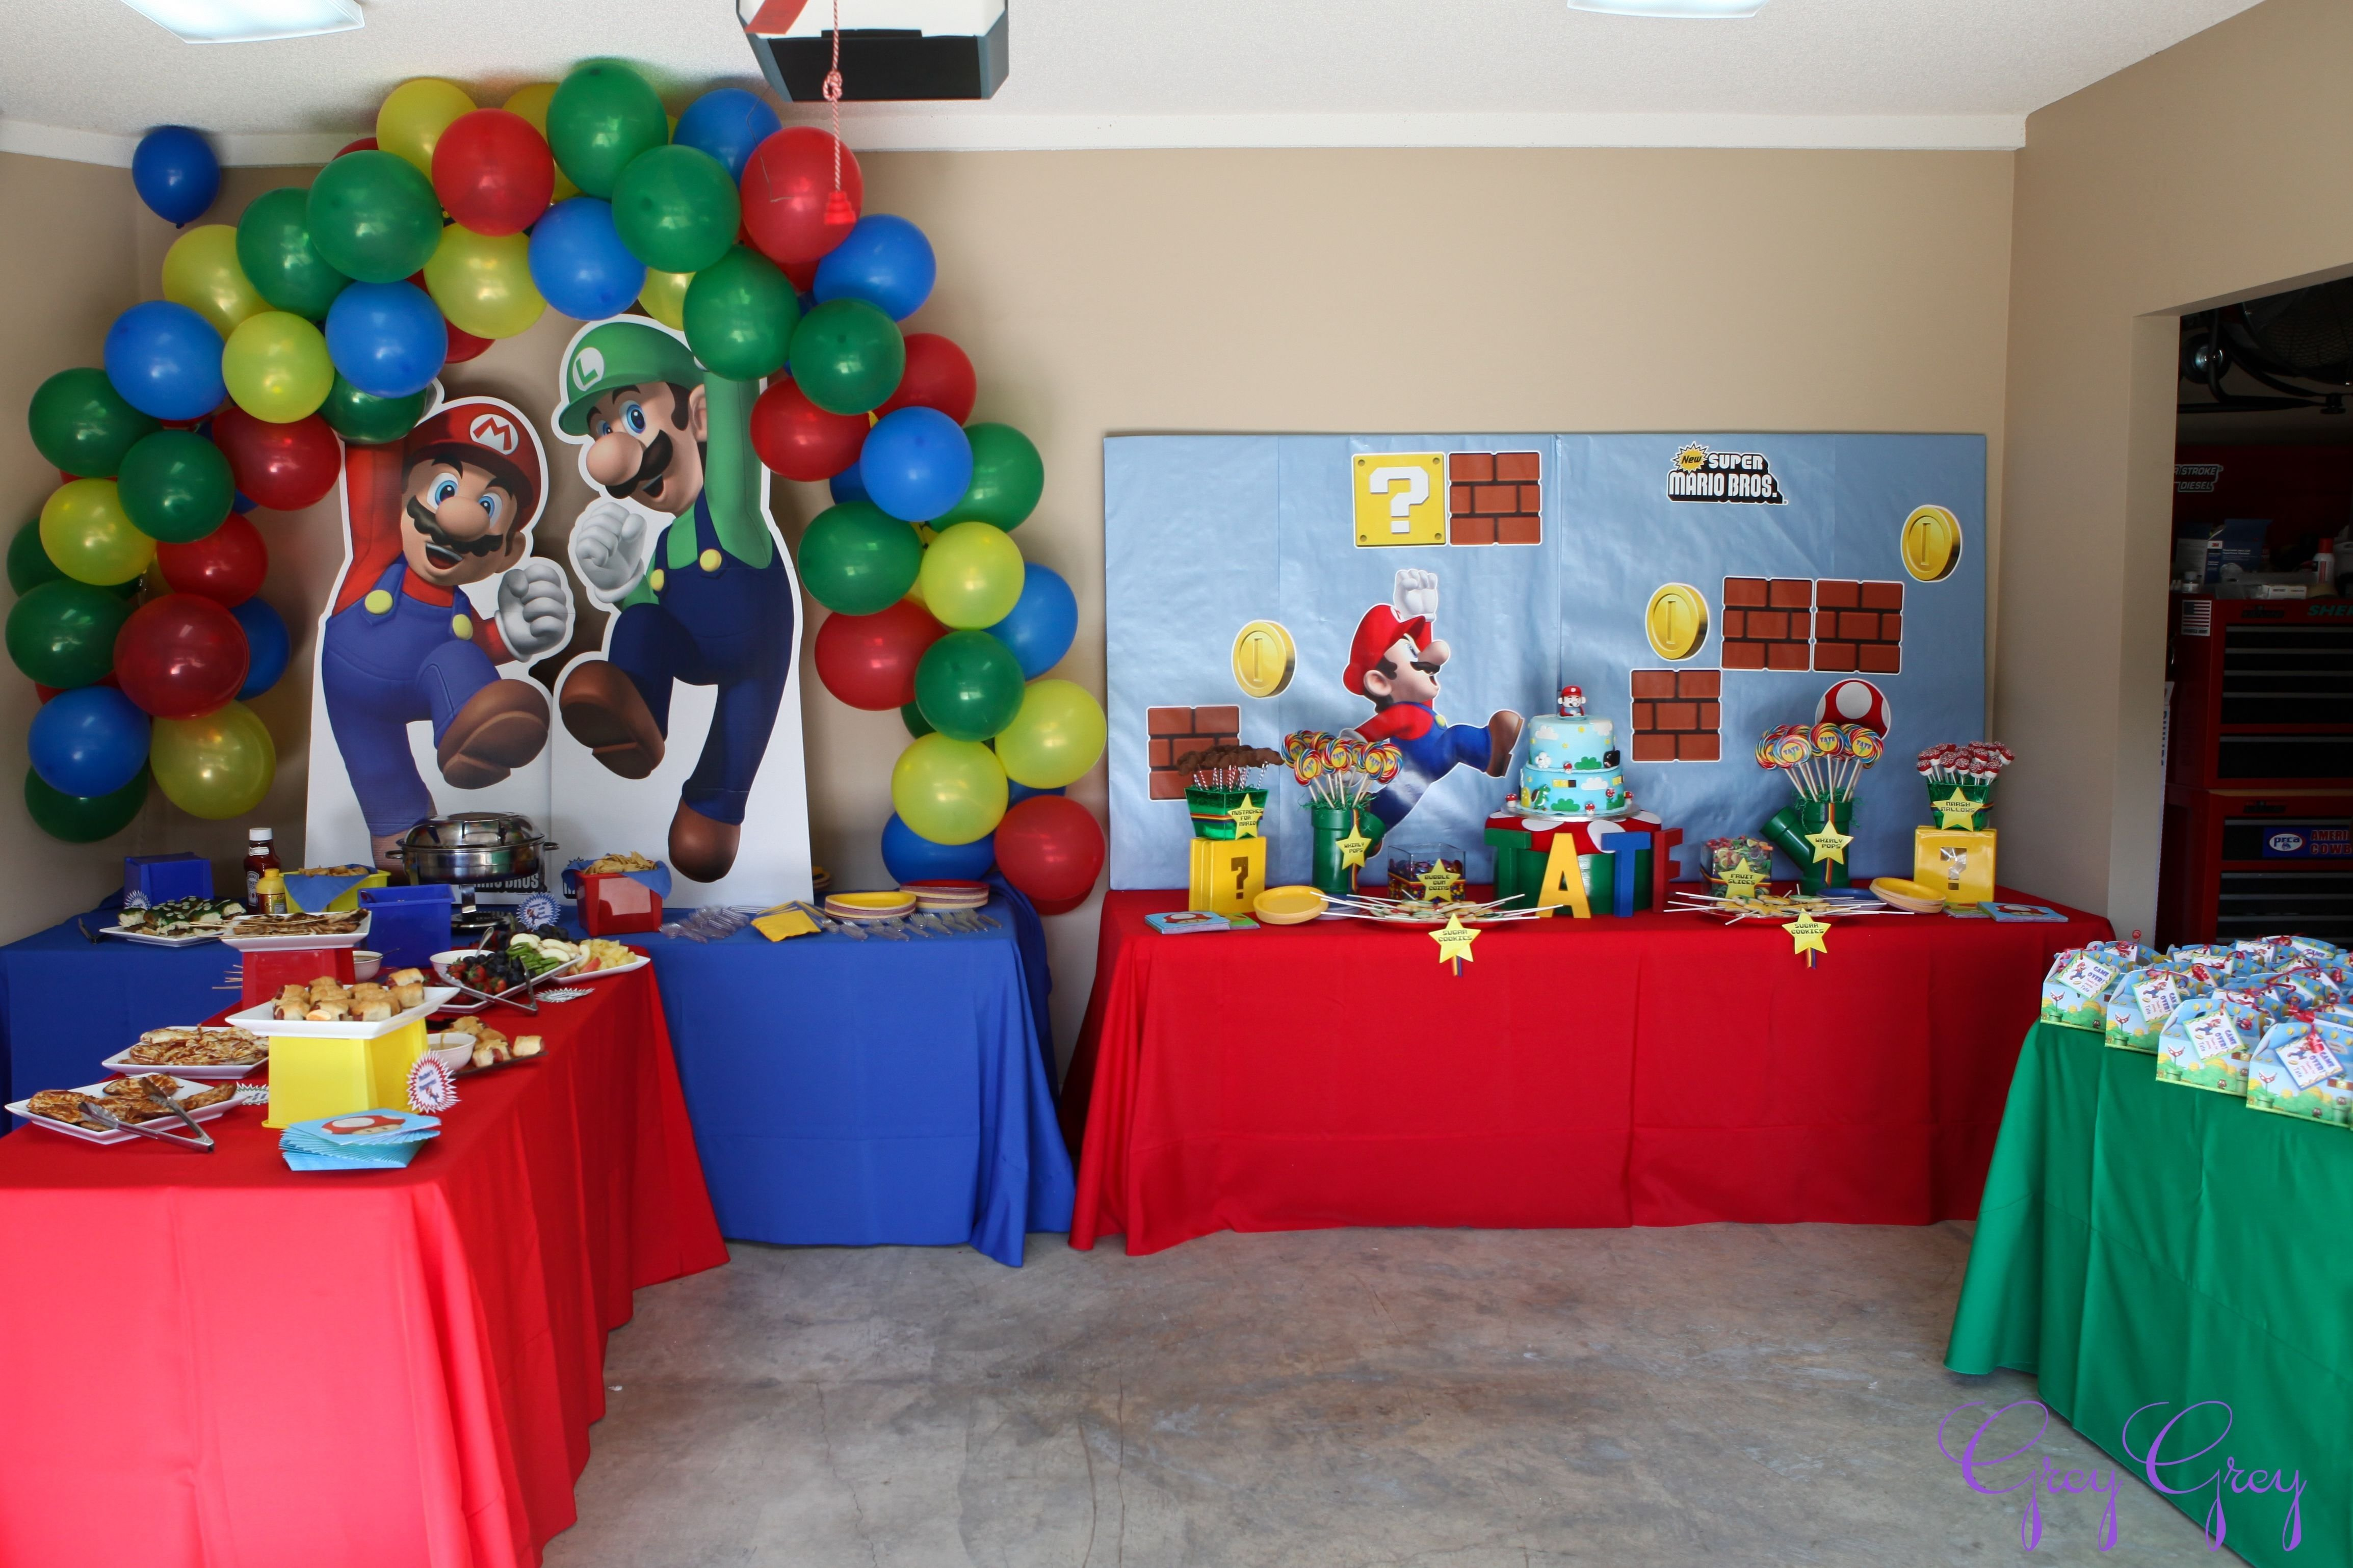 10 Spectacular Mario Brothers Birthday Party Ideas birthday party ideas backdrops super mario party and balloon backdrop 1 2020